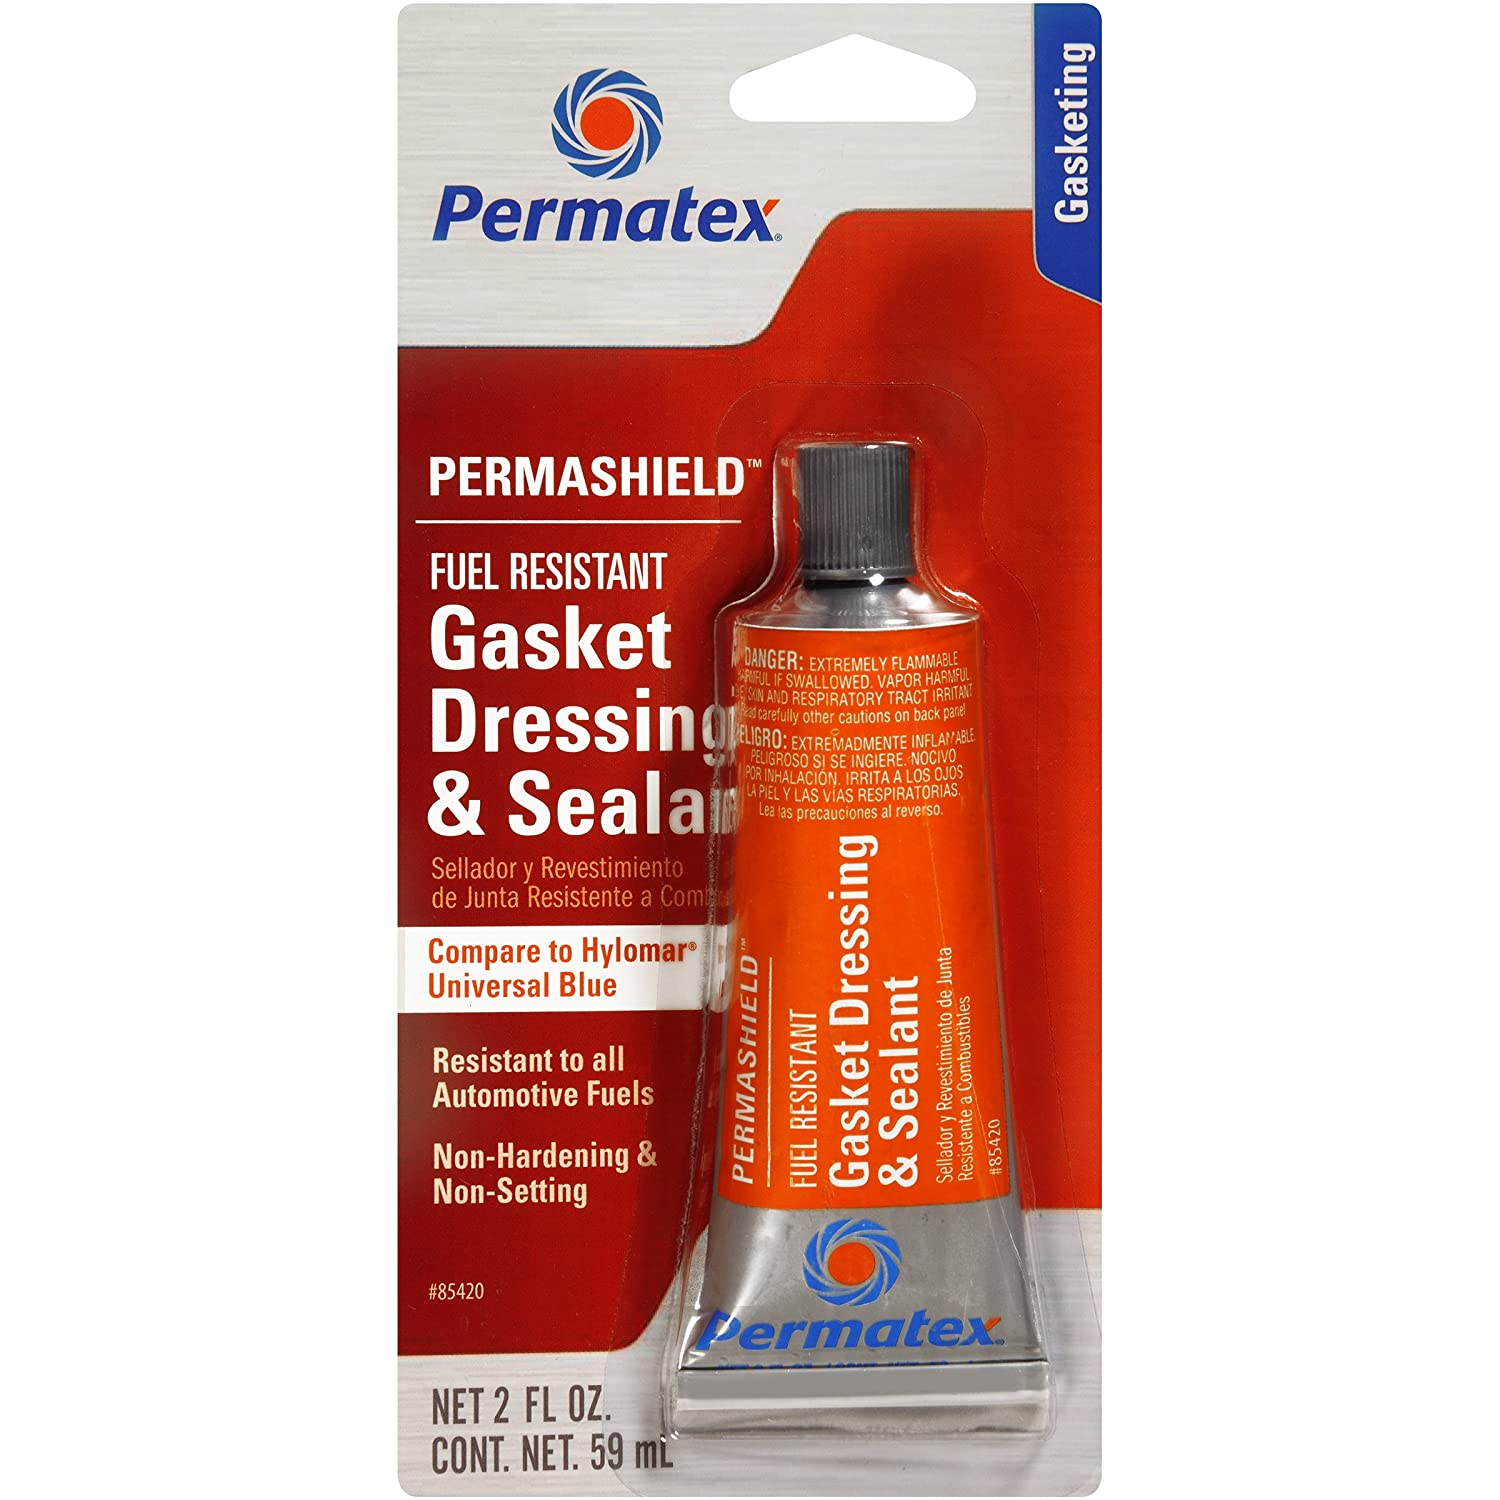 Permatex 85420 Permashield Fuel Resistant Gasket Dressing & Sealant, 2 oz Tube